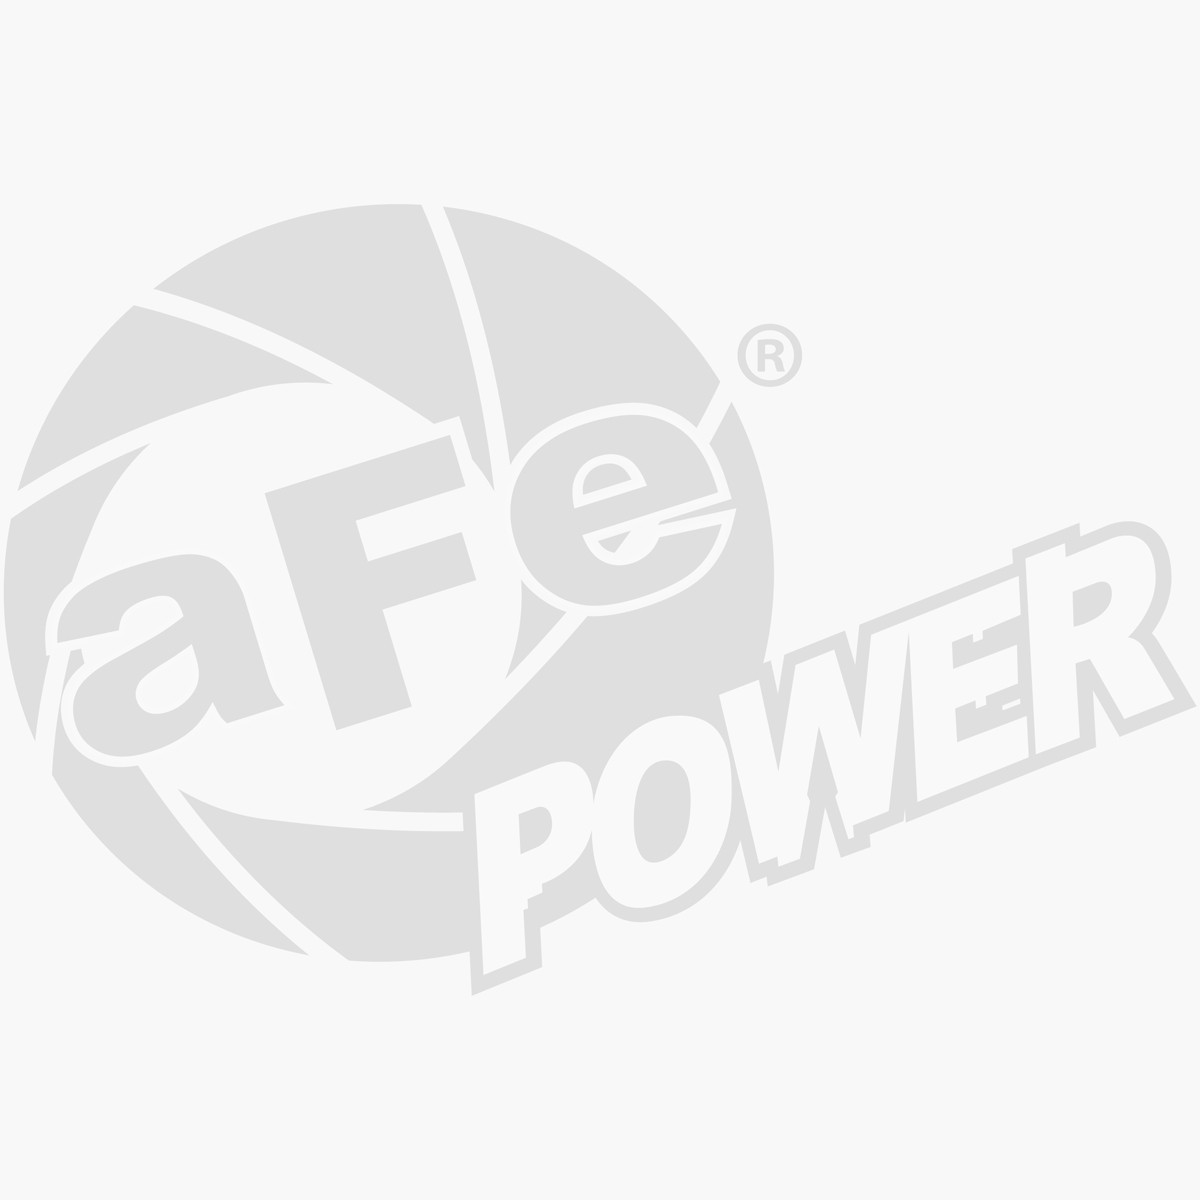 aFe POWER 18-11103 Round Racing Pro 5R Air Filter